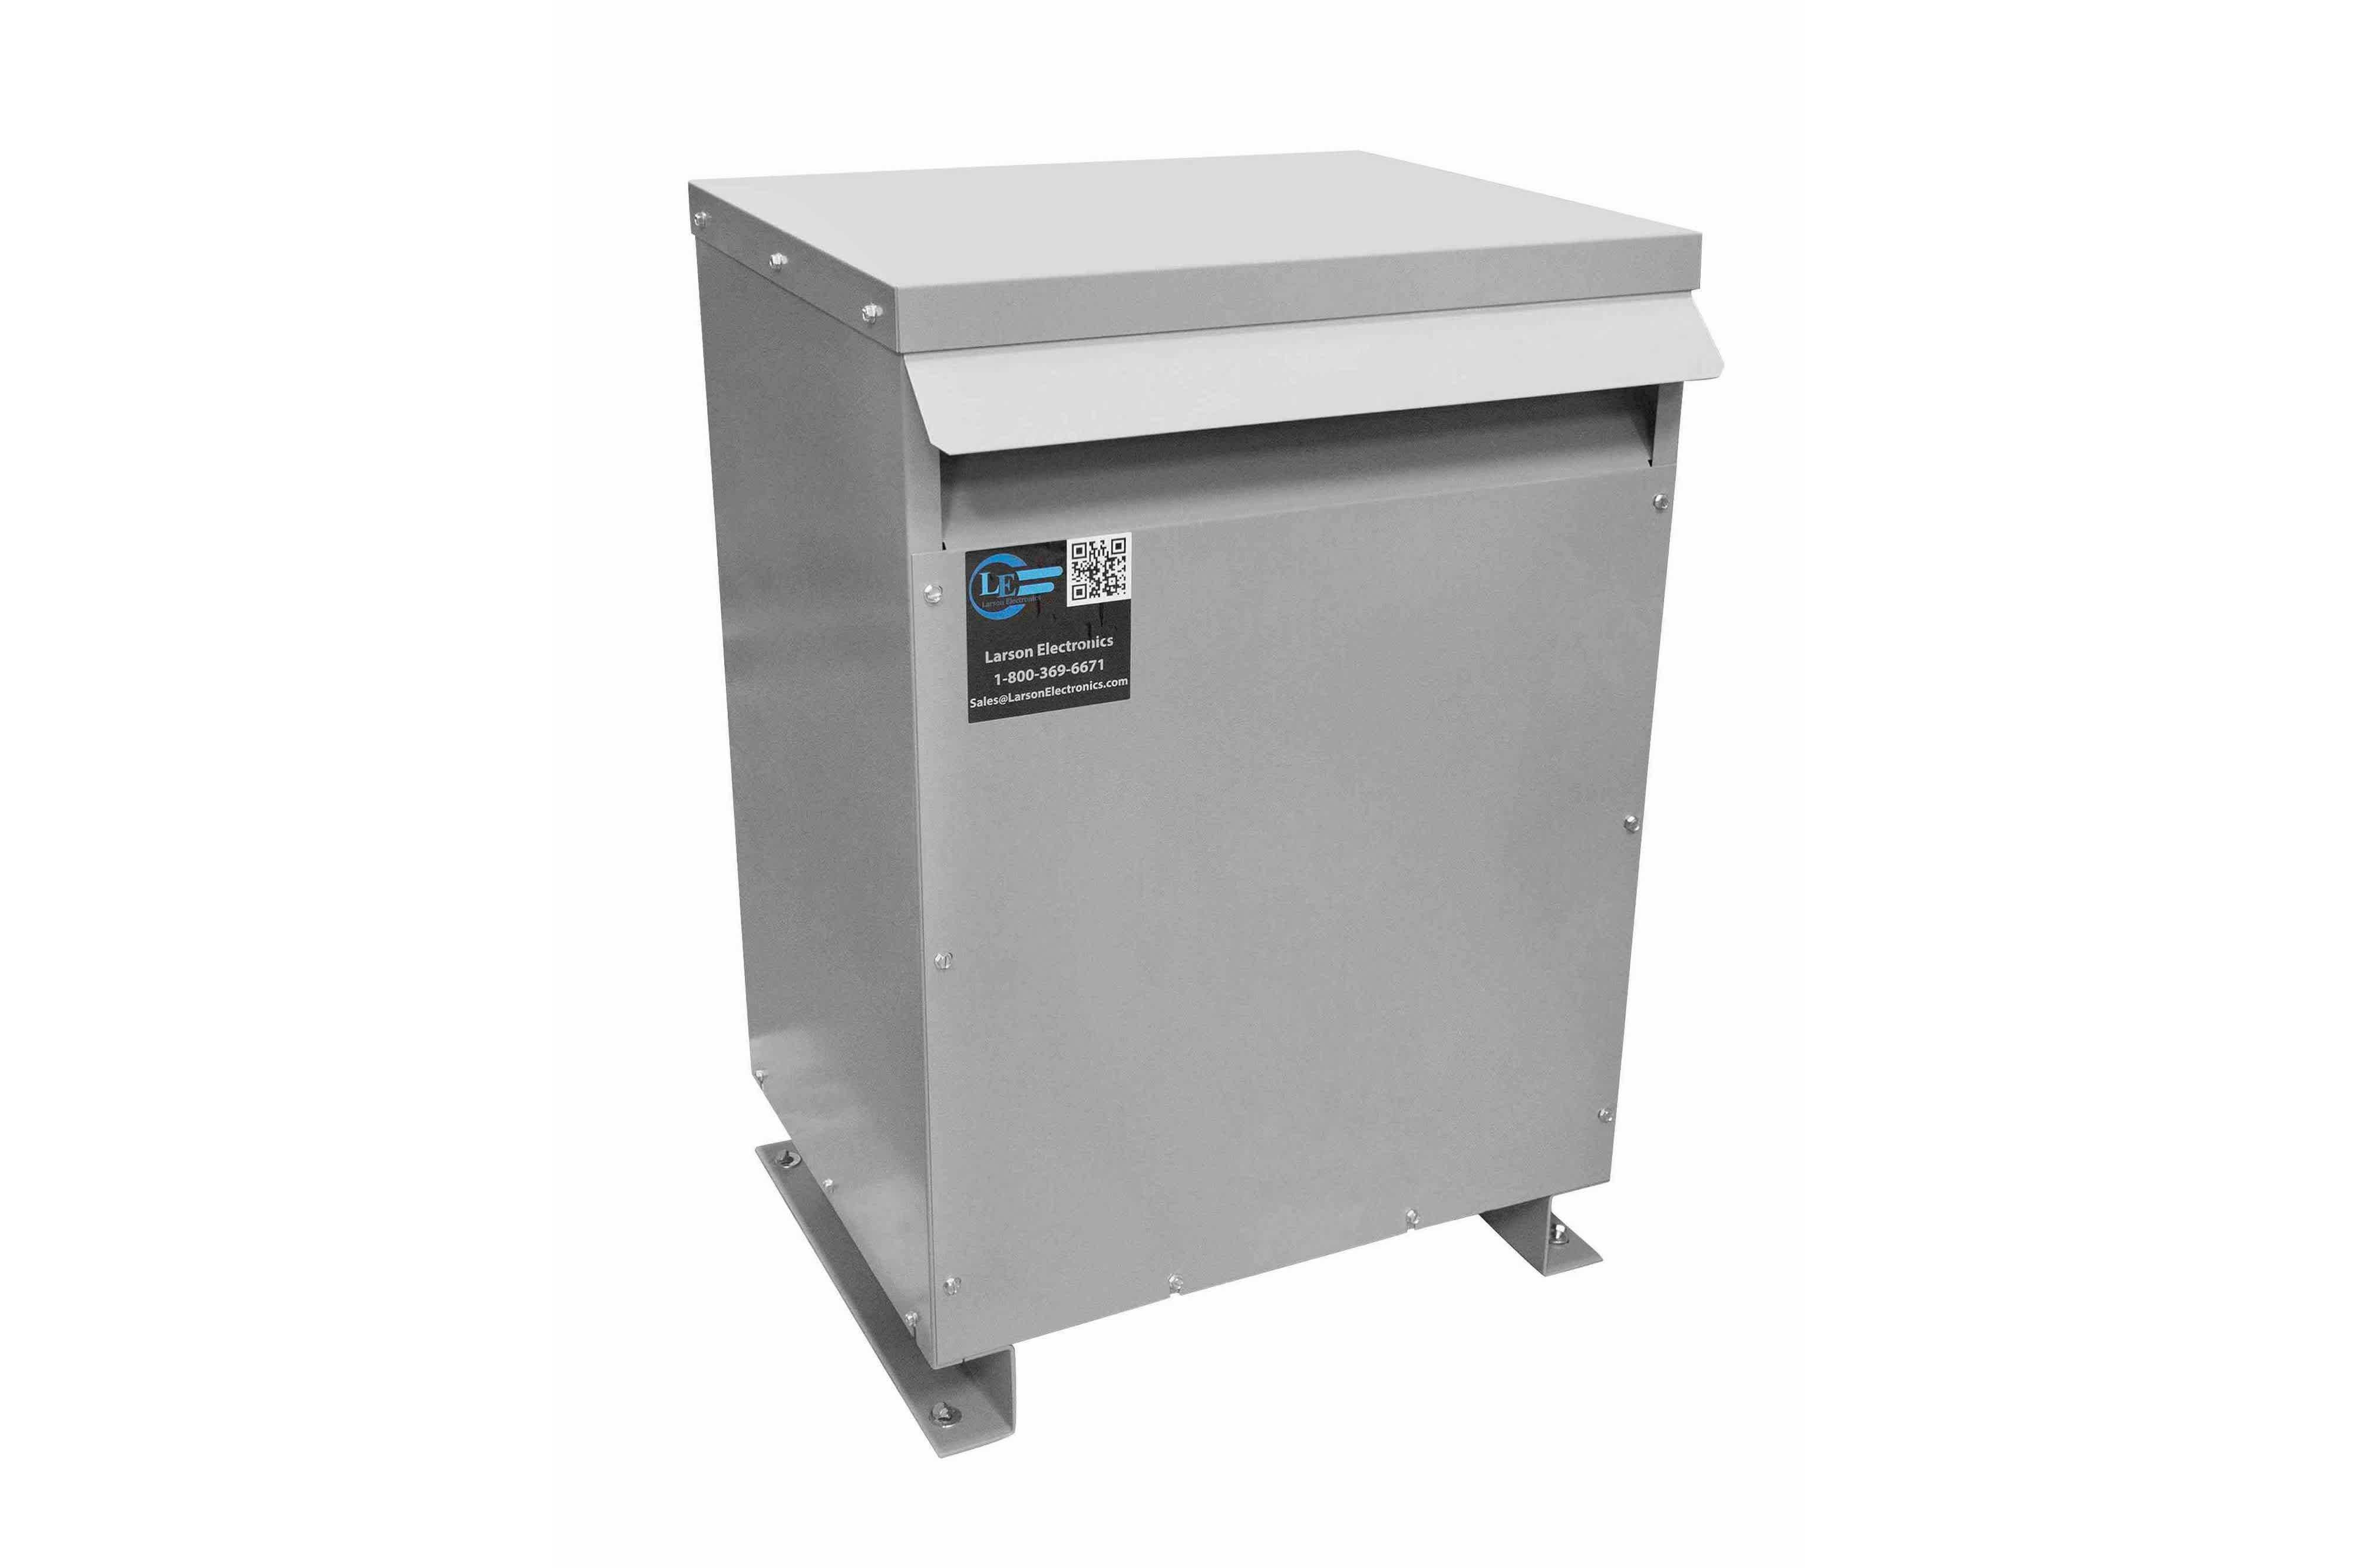 10 kVA 3PH Isolation Transformer, 600V Delta Primary, 480V Delta Secondary, N3R, Ventilated, 60 Hz